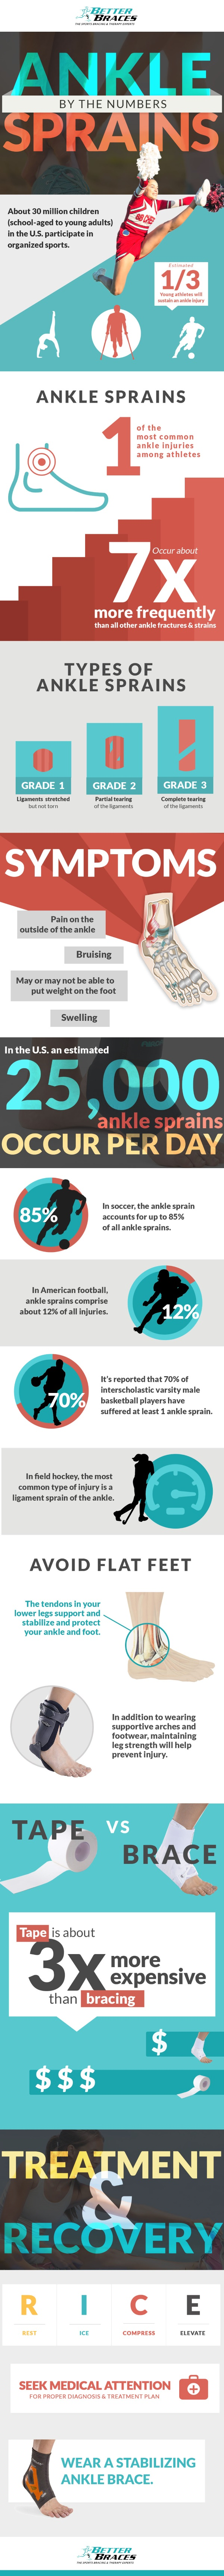 ankle sprains infographic